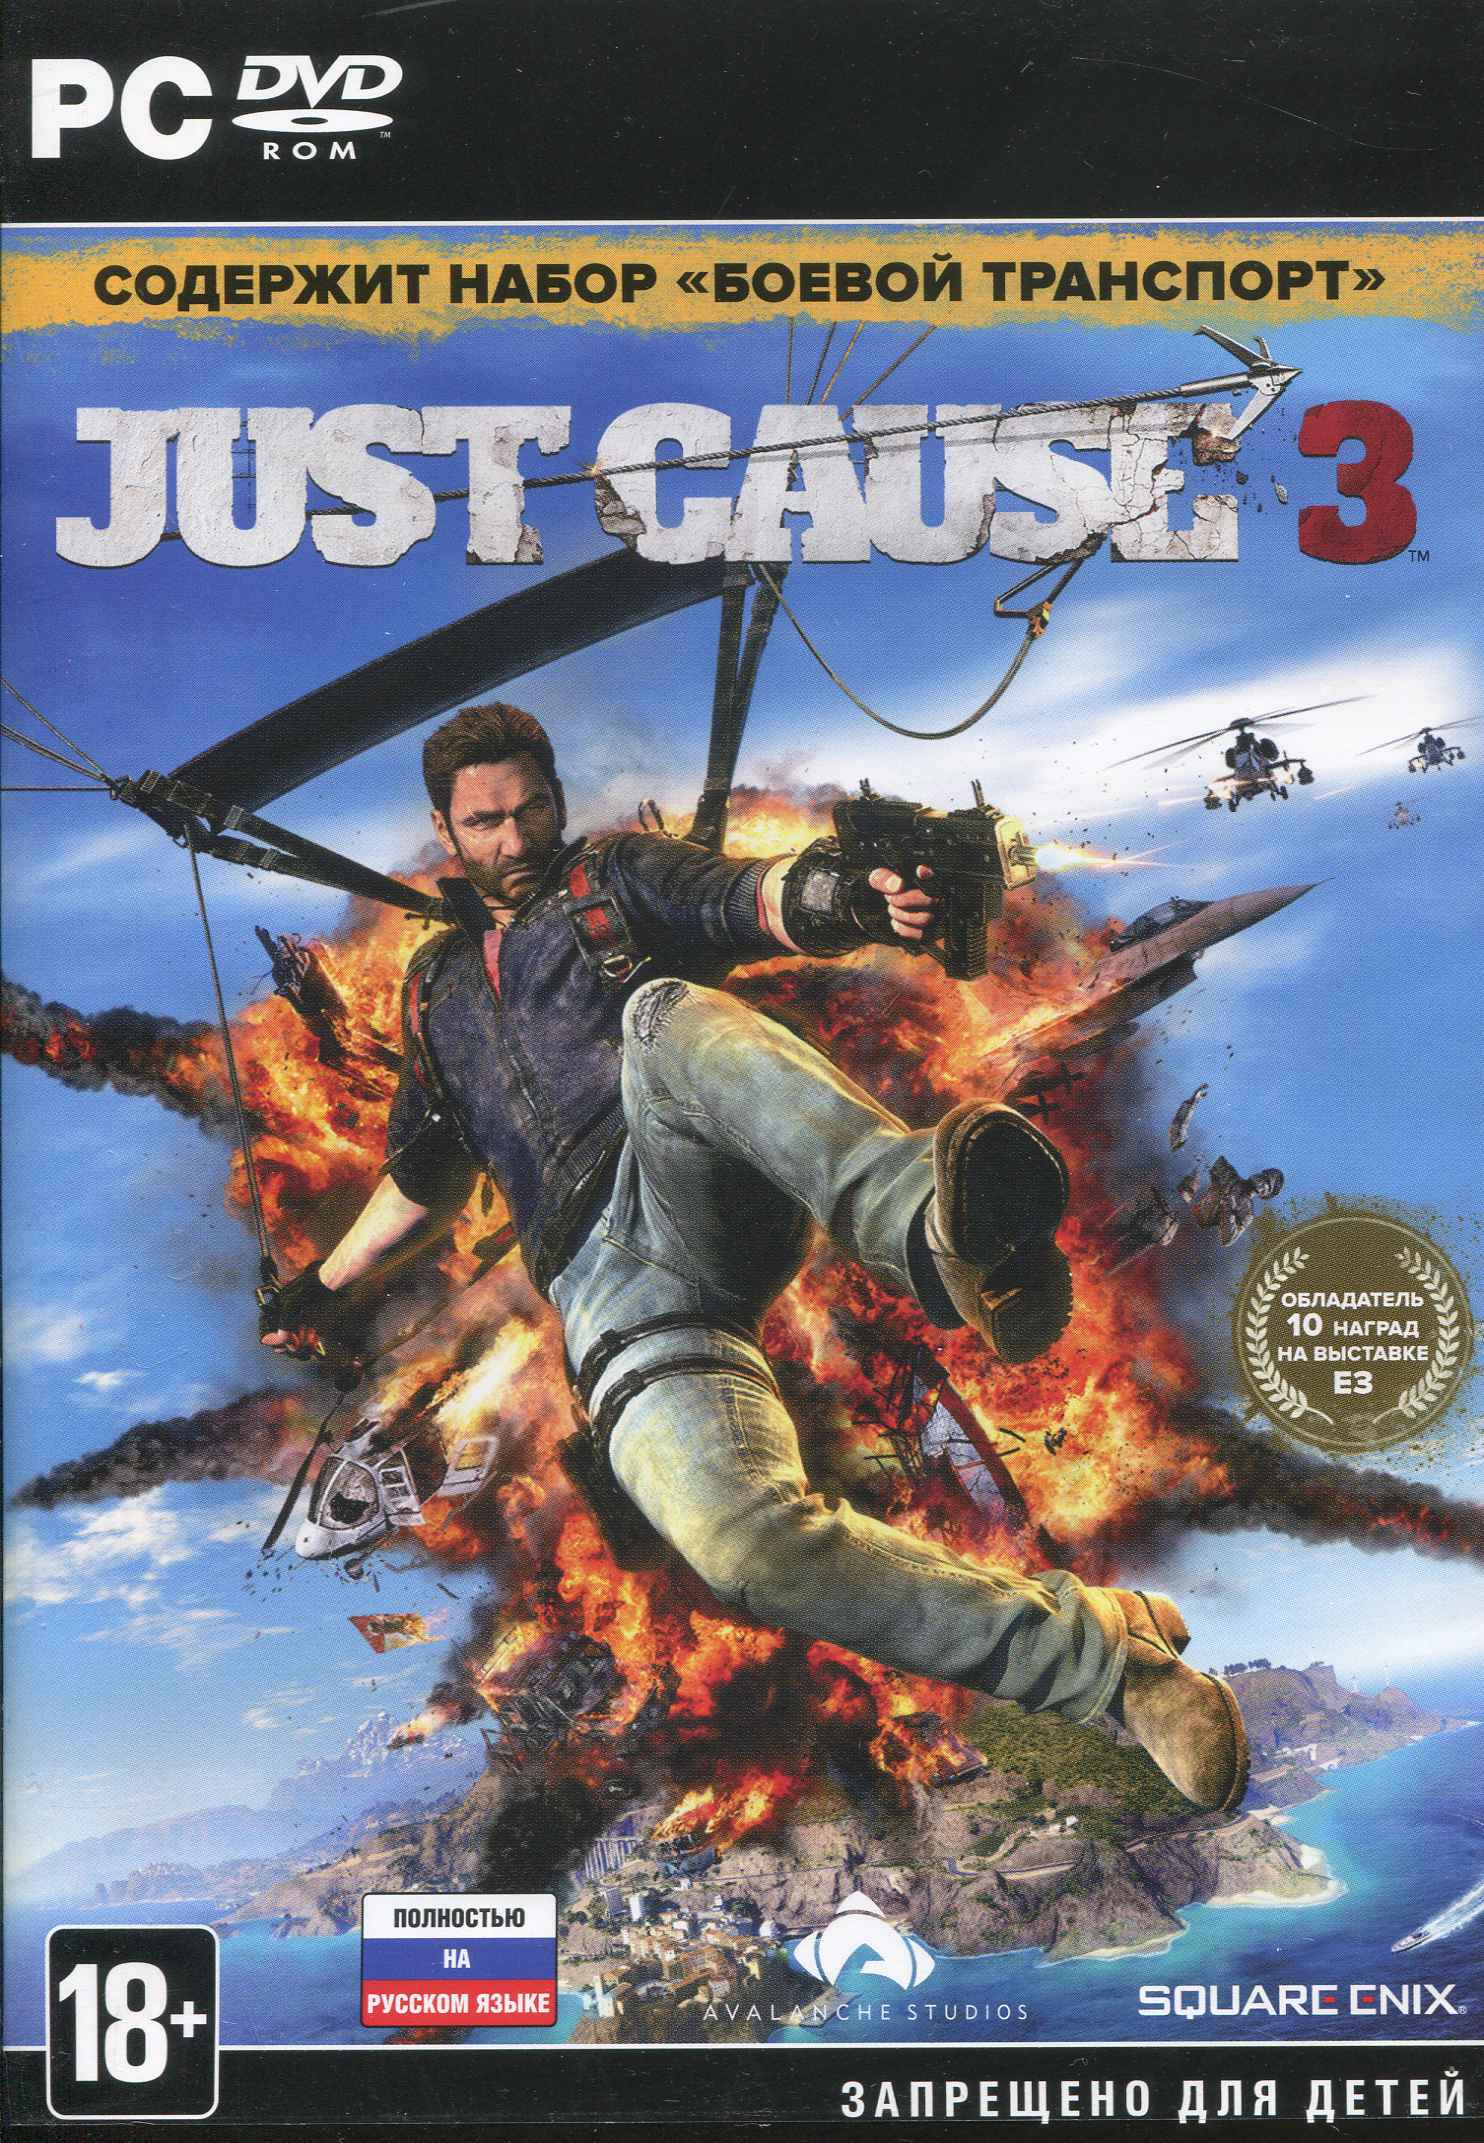 Buy Just Cause 3 + DLC (Key Steam) and download